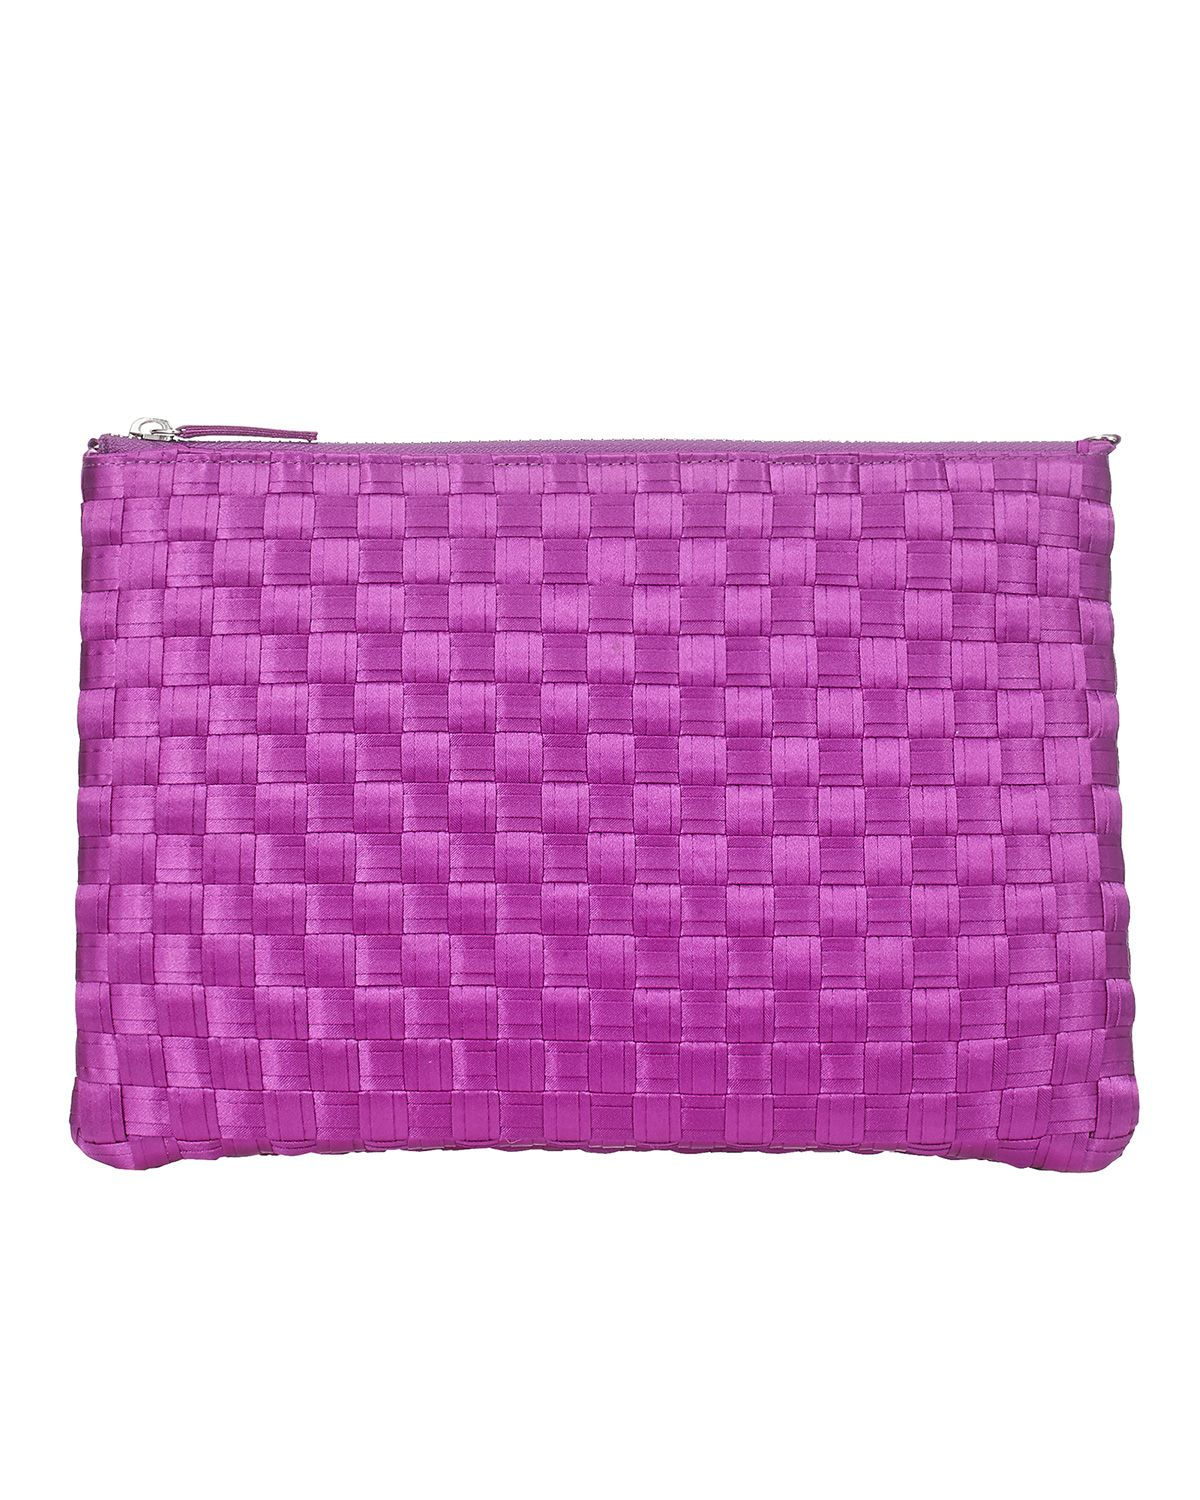 Bags   Purple Annabel Satin Weave Clutch Bag   Phase Eight   Dressy ...